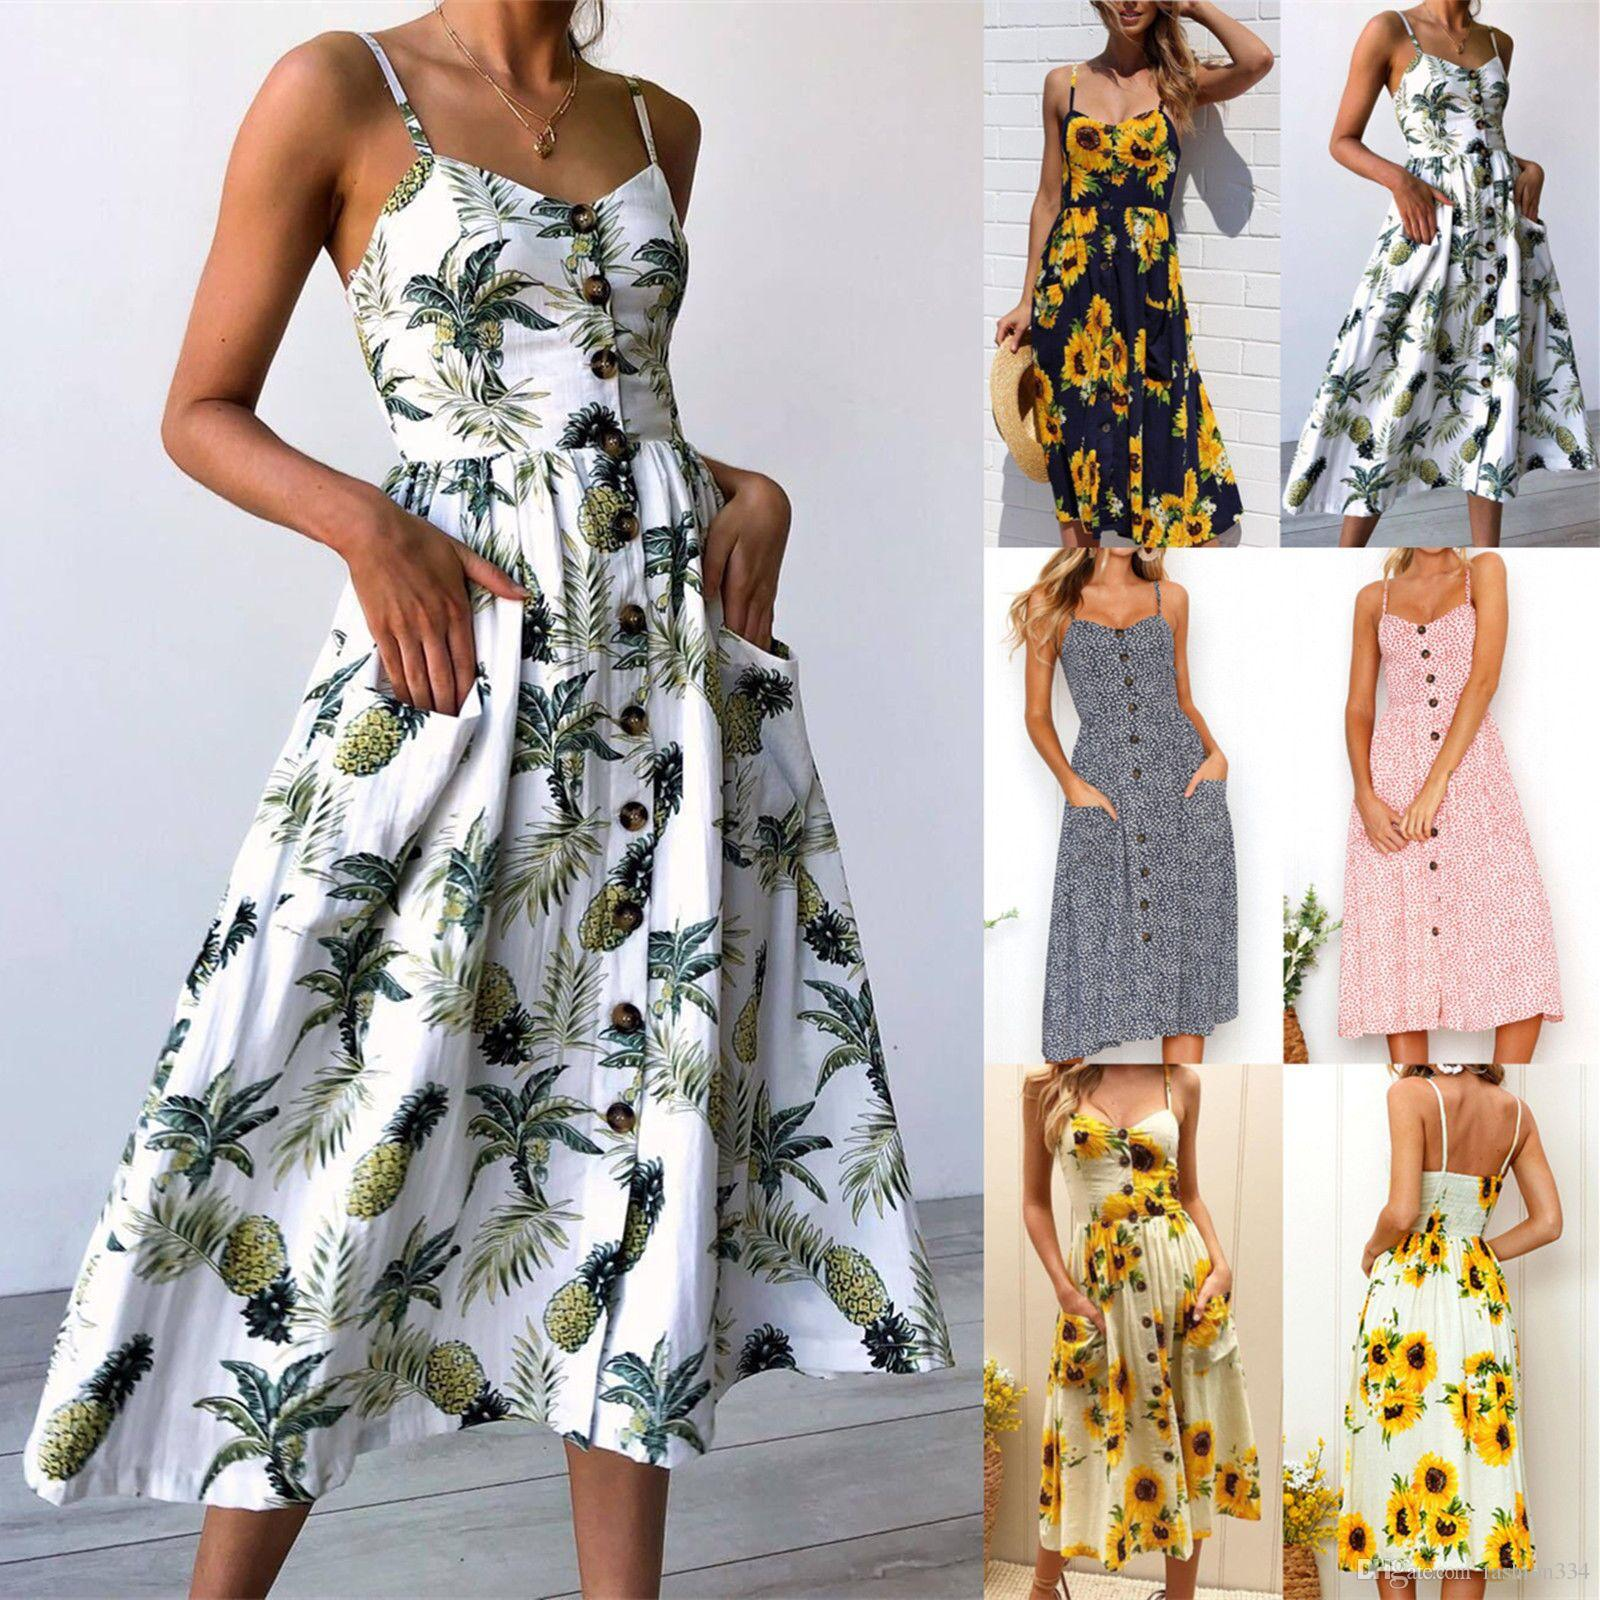 3d0b0b8ecaf5 Women's Summer Boho Casual Long Maxi Evening Party Cocktail Beach Dress  Sundress Print Flower Sleeveless Sexy Backless Strap Dress